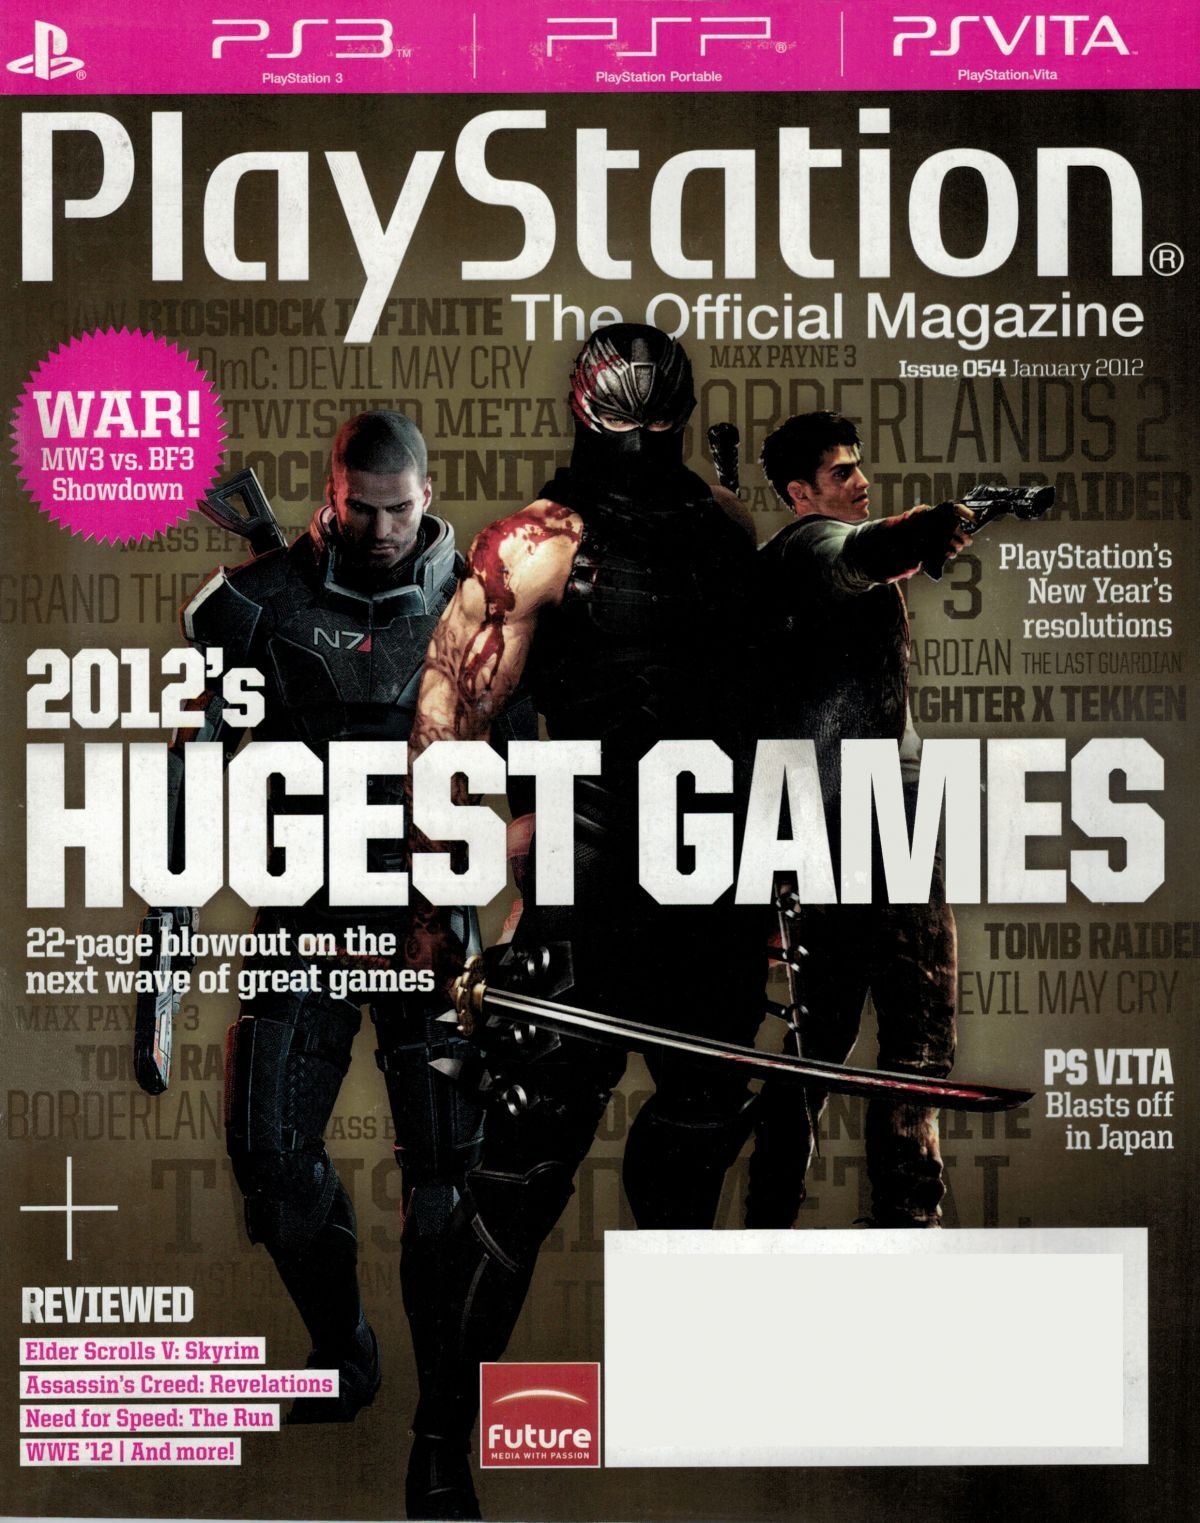 PlayStation The Official Magazine (USA) Issue 054 January 2012